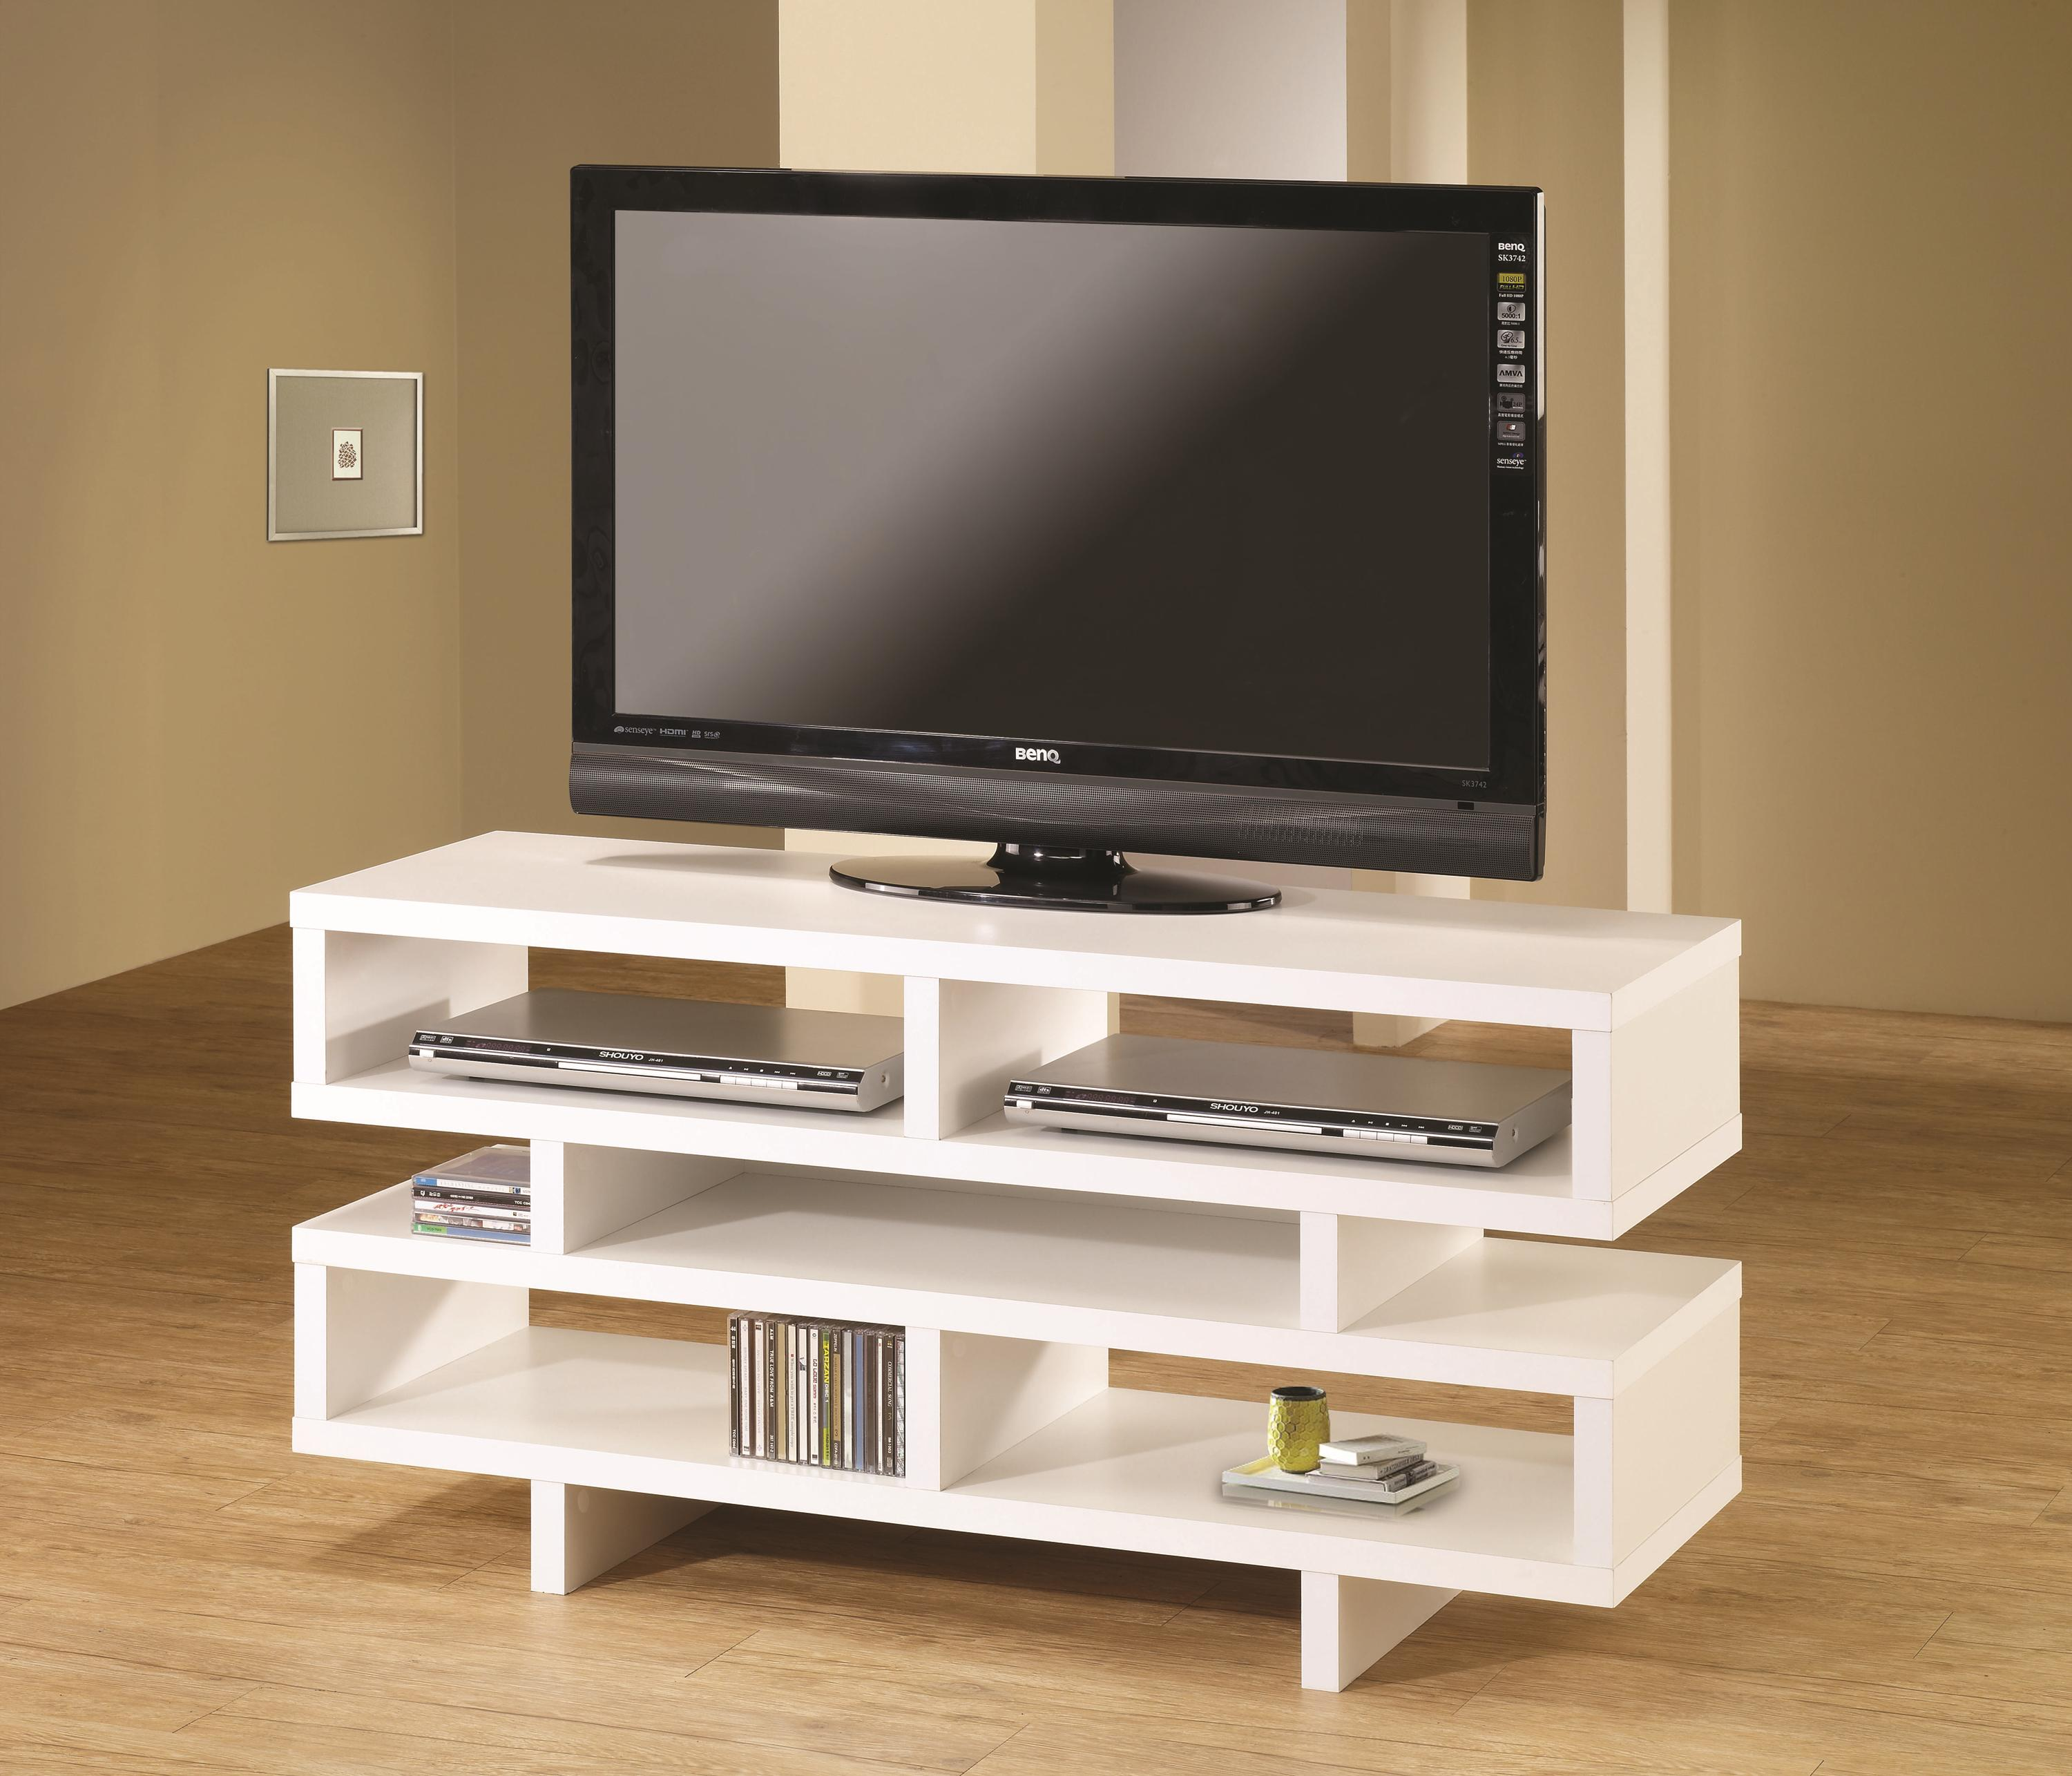 Coaster Tv Stands Contemporary Tv Console With Open Storage White